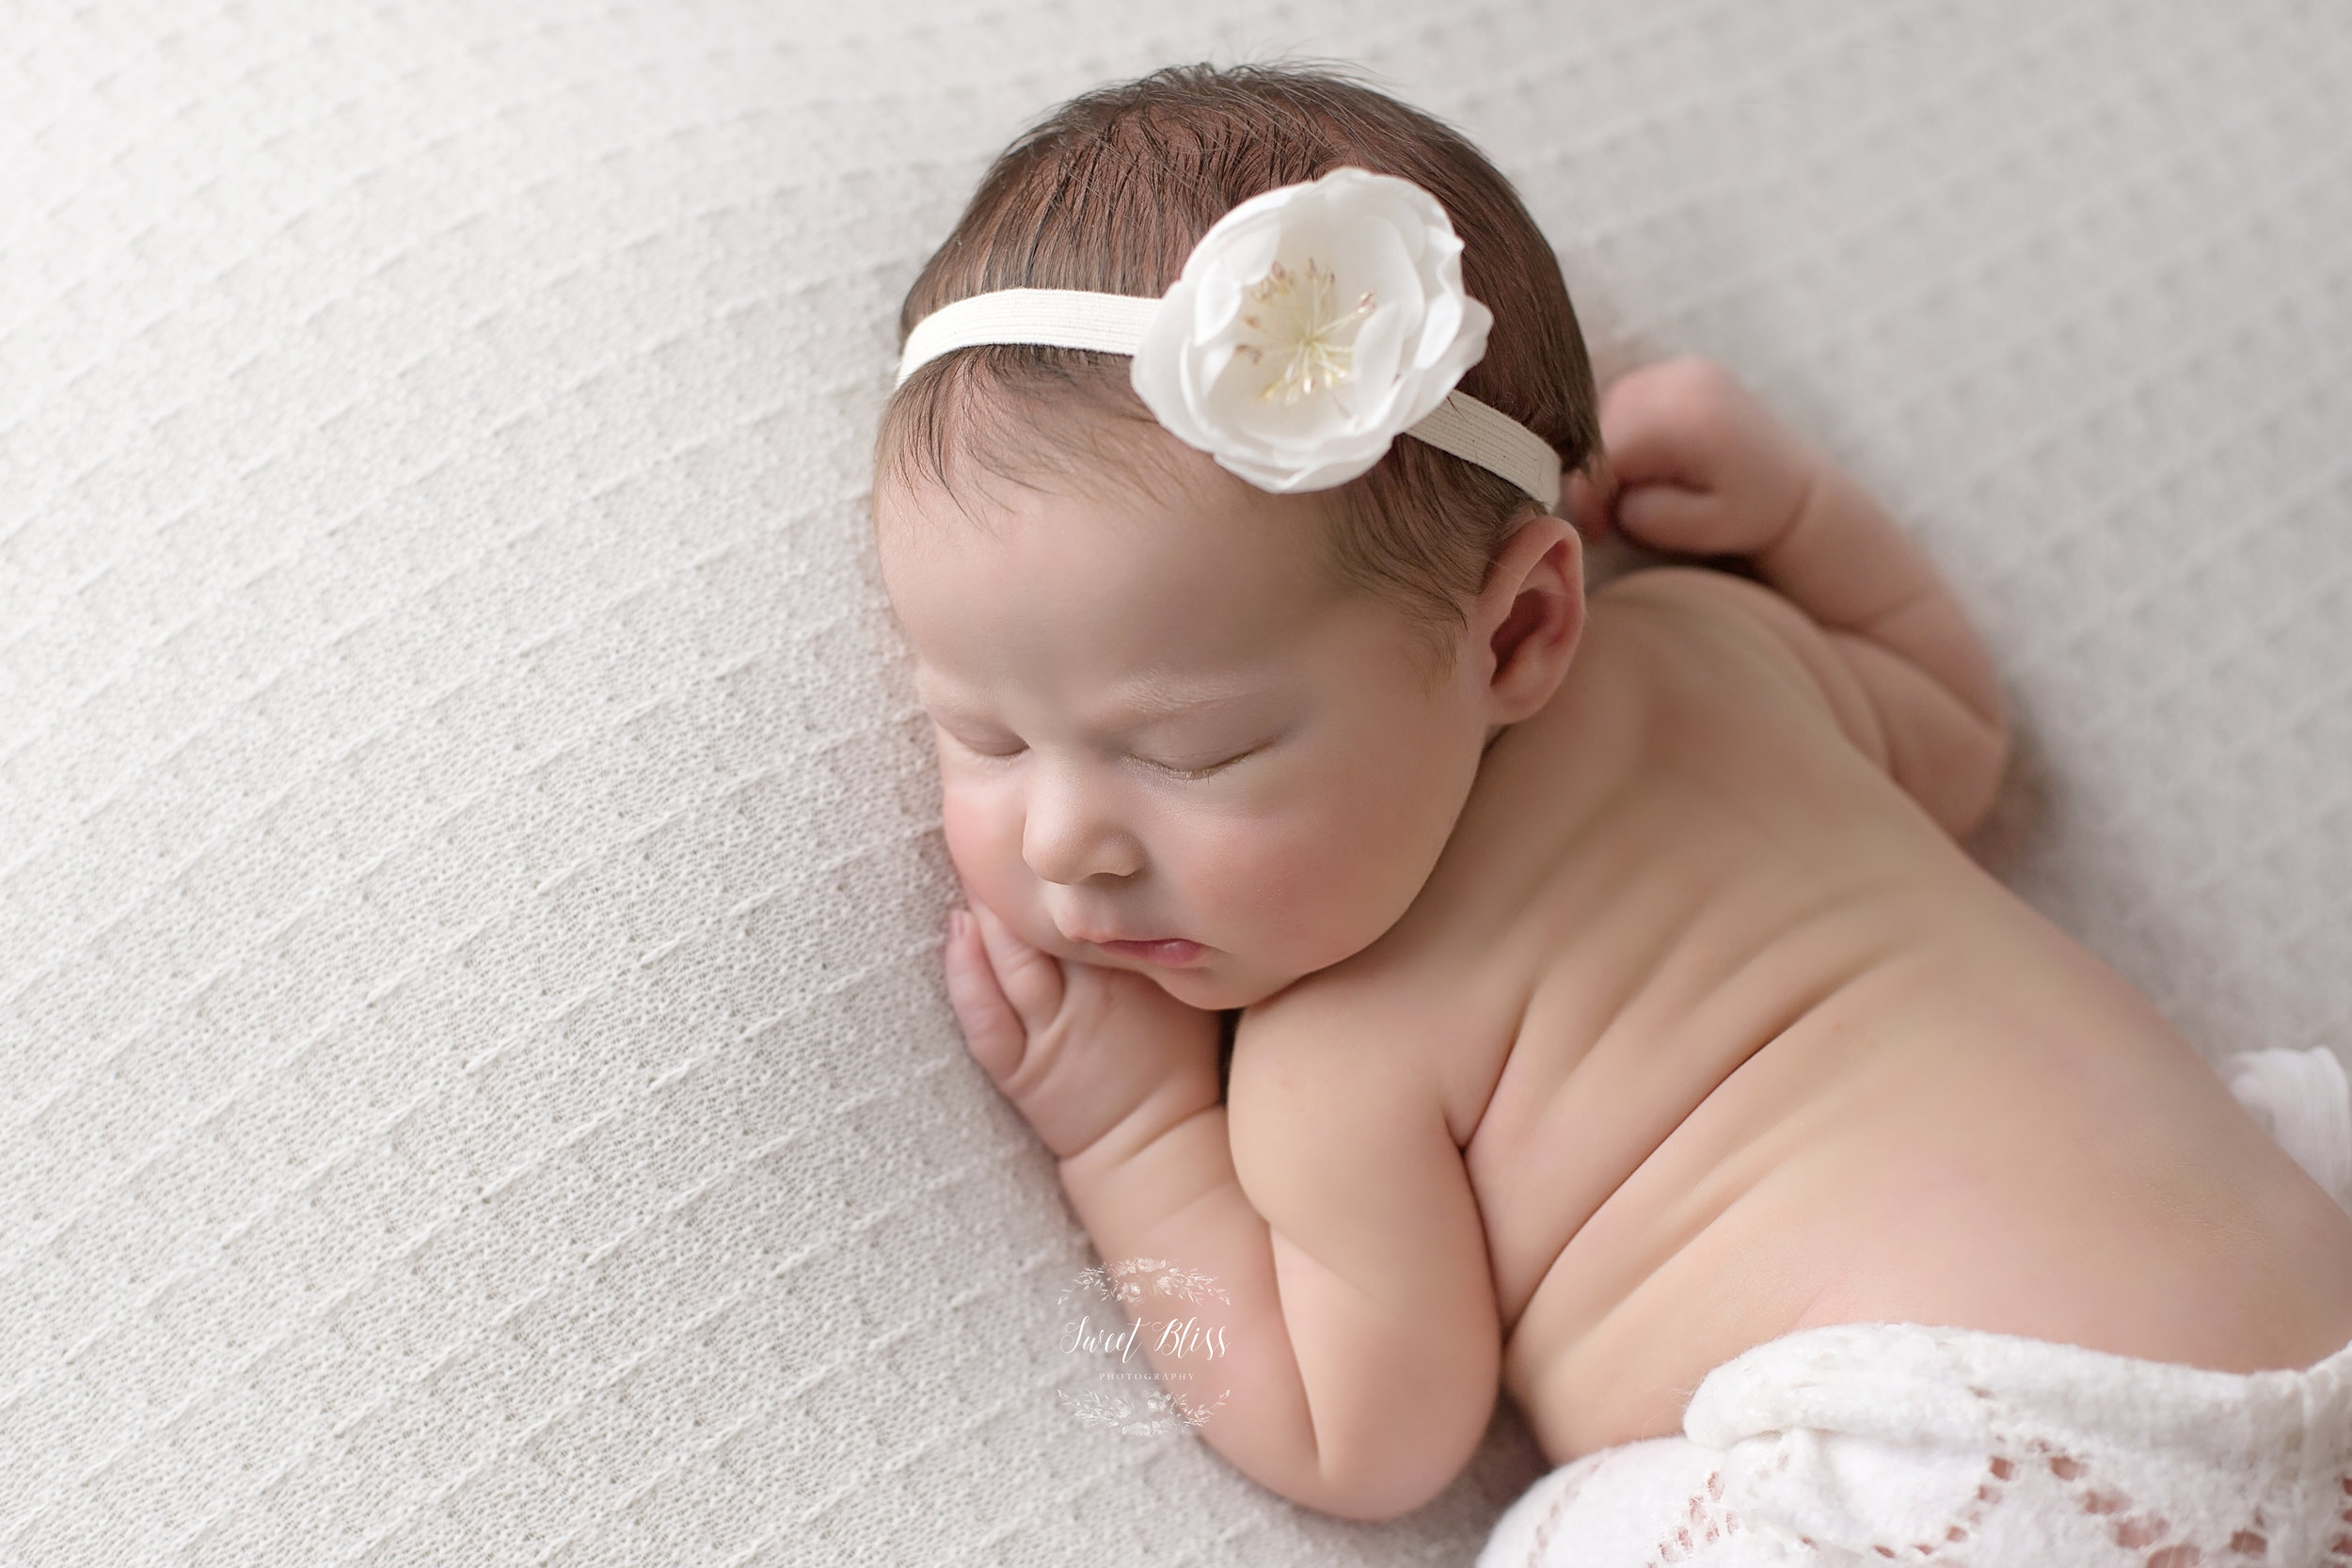 abingdonnewbornphotography_whitepinkandgrey_3 copy.jpg